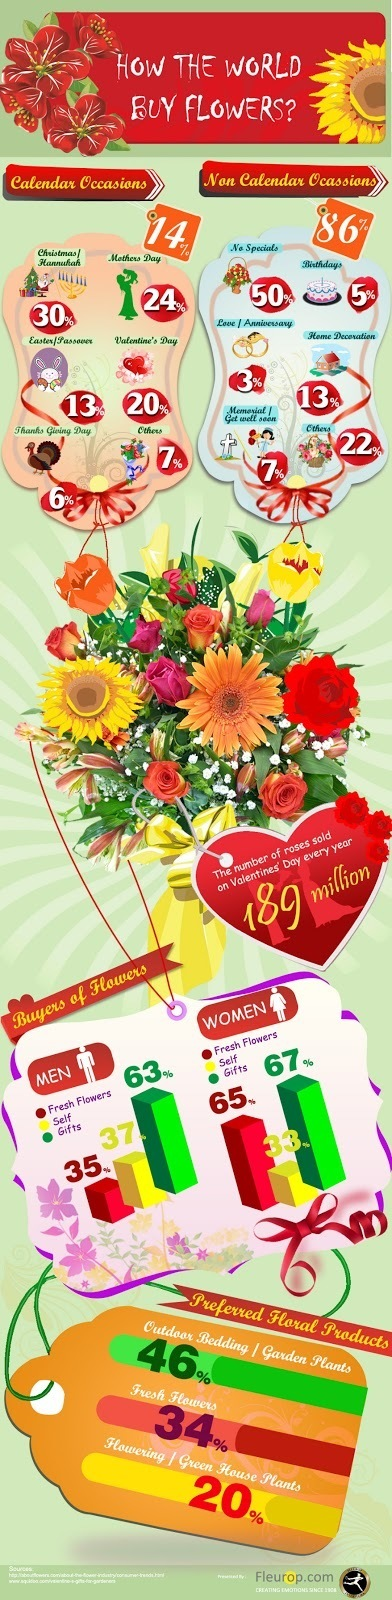 How the world buy flowers? ~ International Flower Delivery Services | fleurs | Scoop.it